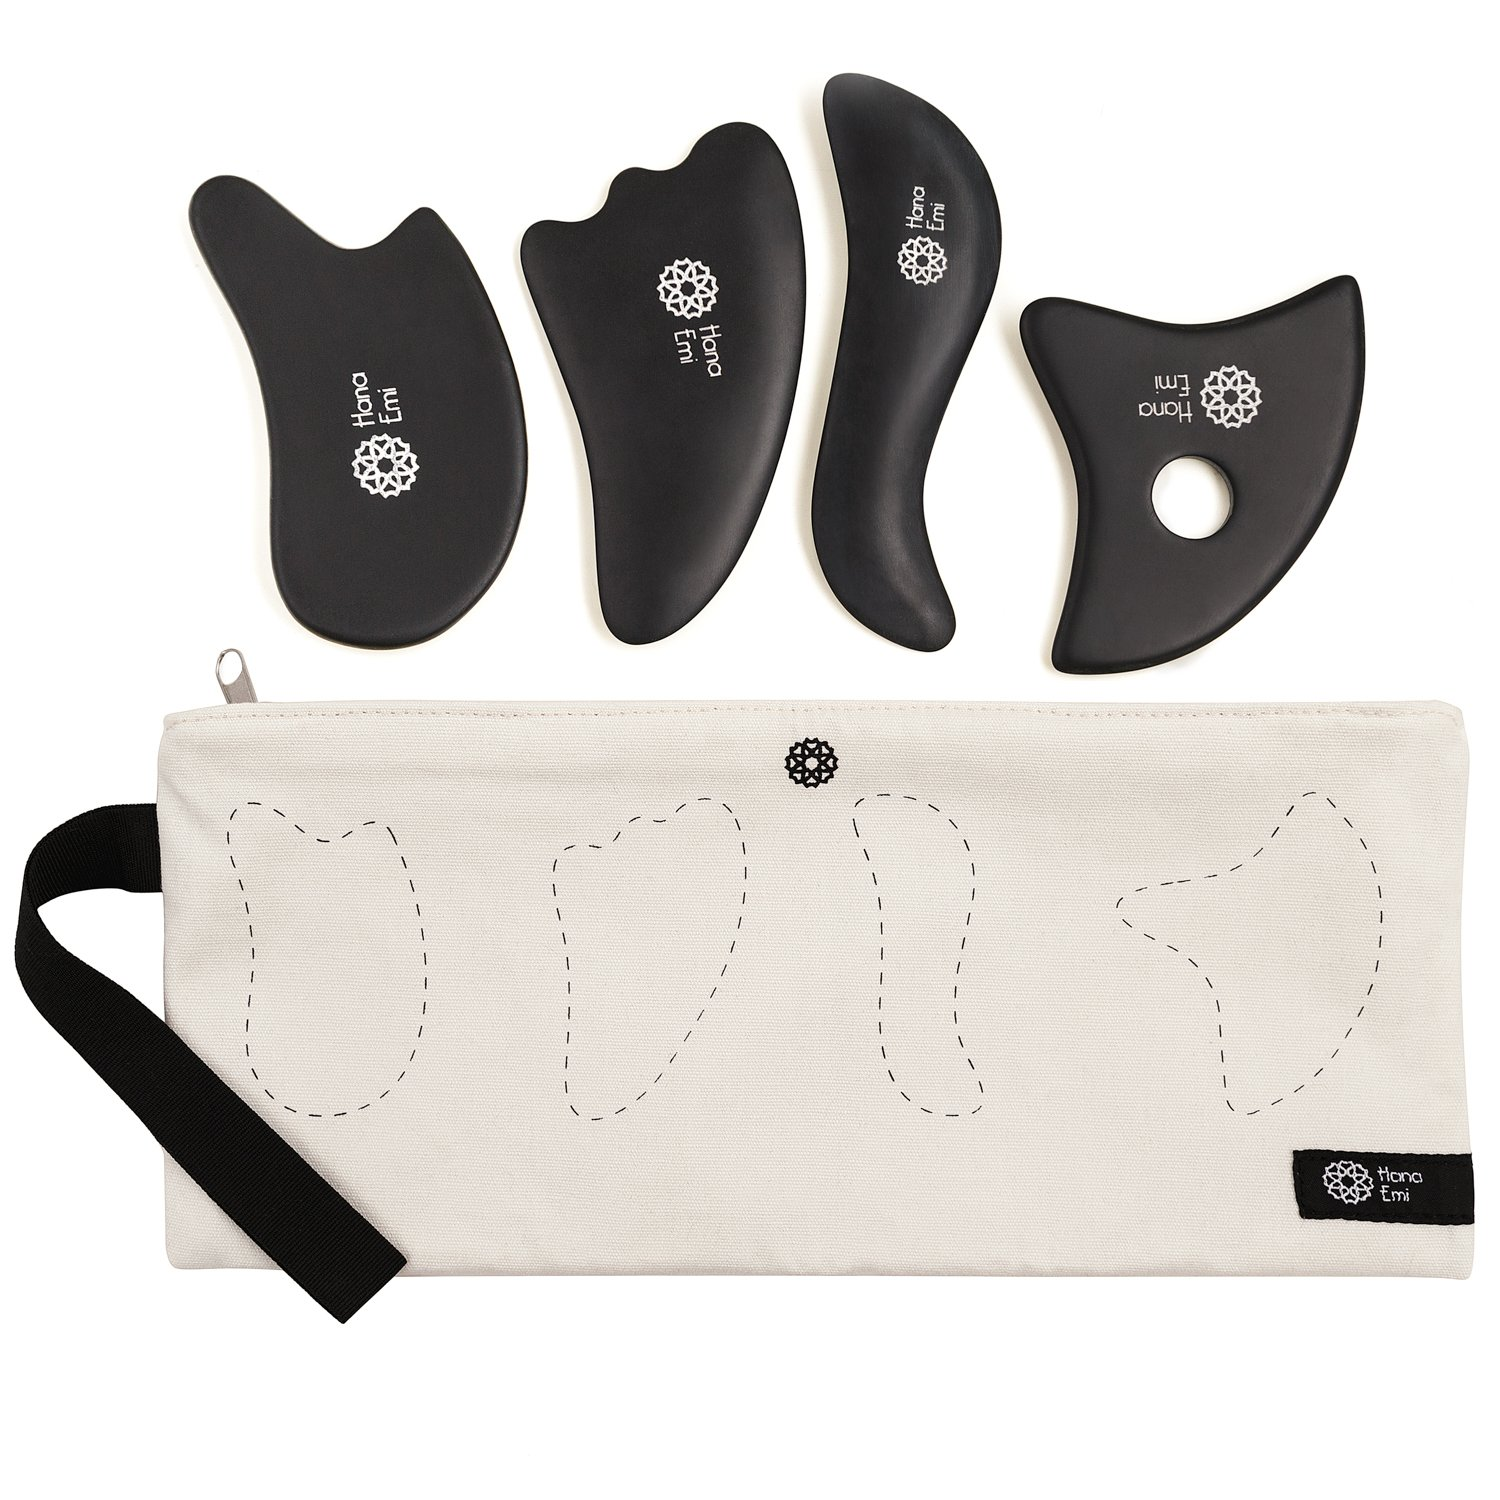 4 Gua Sha Scraping Massage Tools with Smooth Edge ✮ High Quality Handmade Sibin Bian Stone ✮ Face and Body ✮ Physical Therapy Tool for Graston, IASTM, ASTYM ✮ Storage Bag ✮ E-Book Bonus (4 pcs Set) by Hana Emi